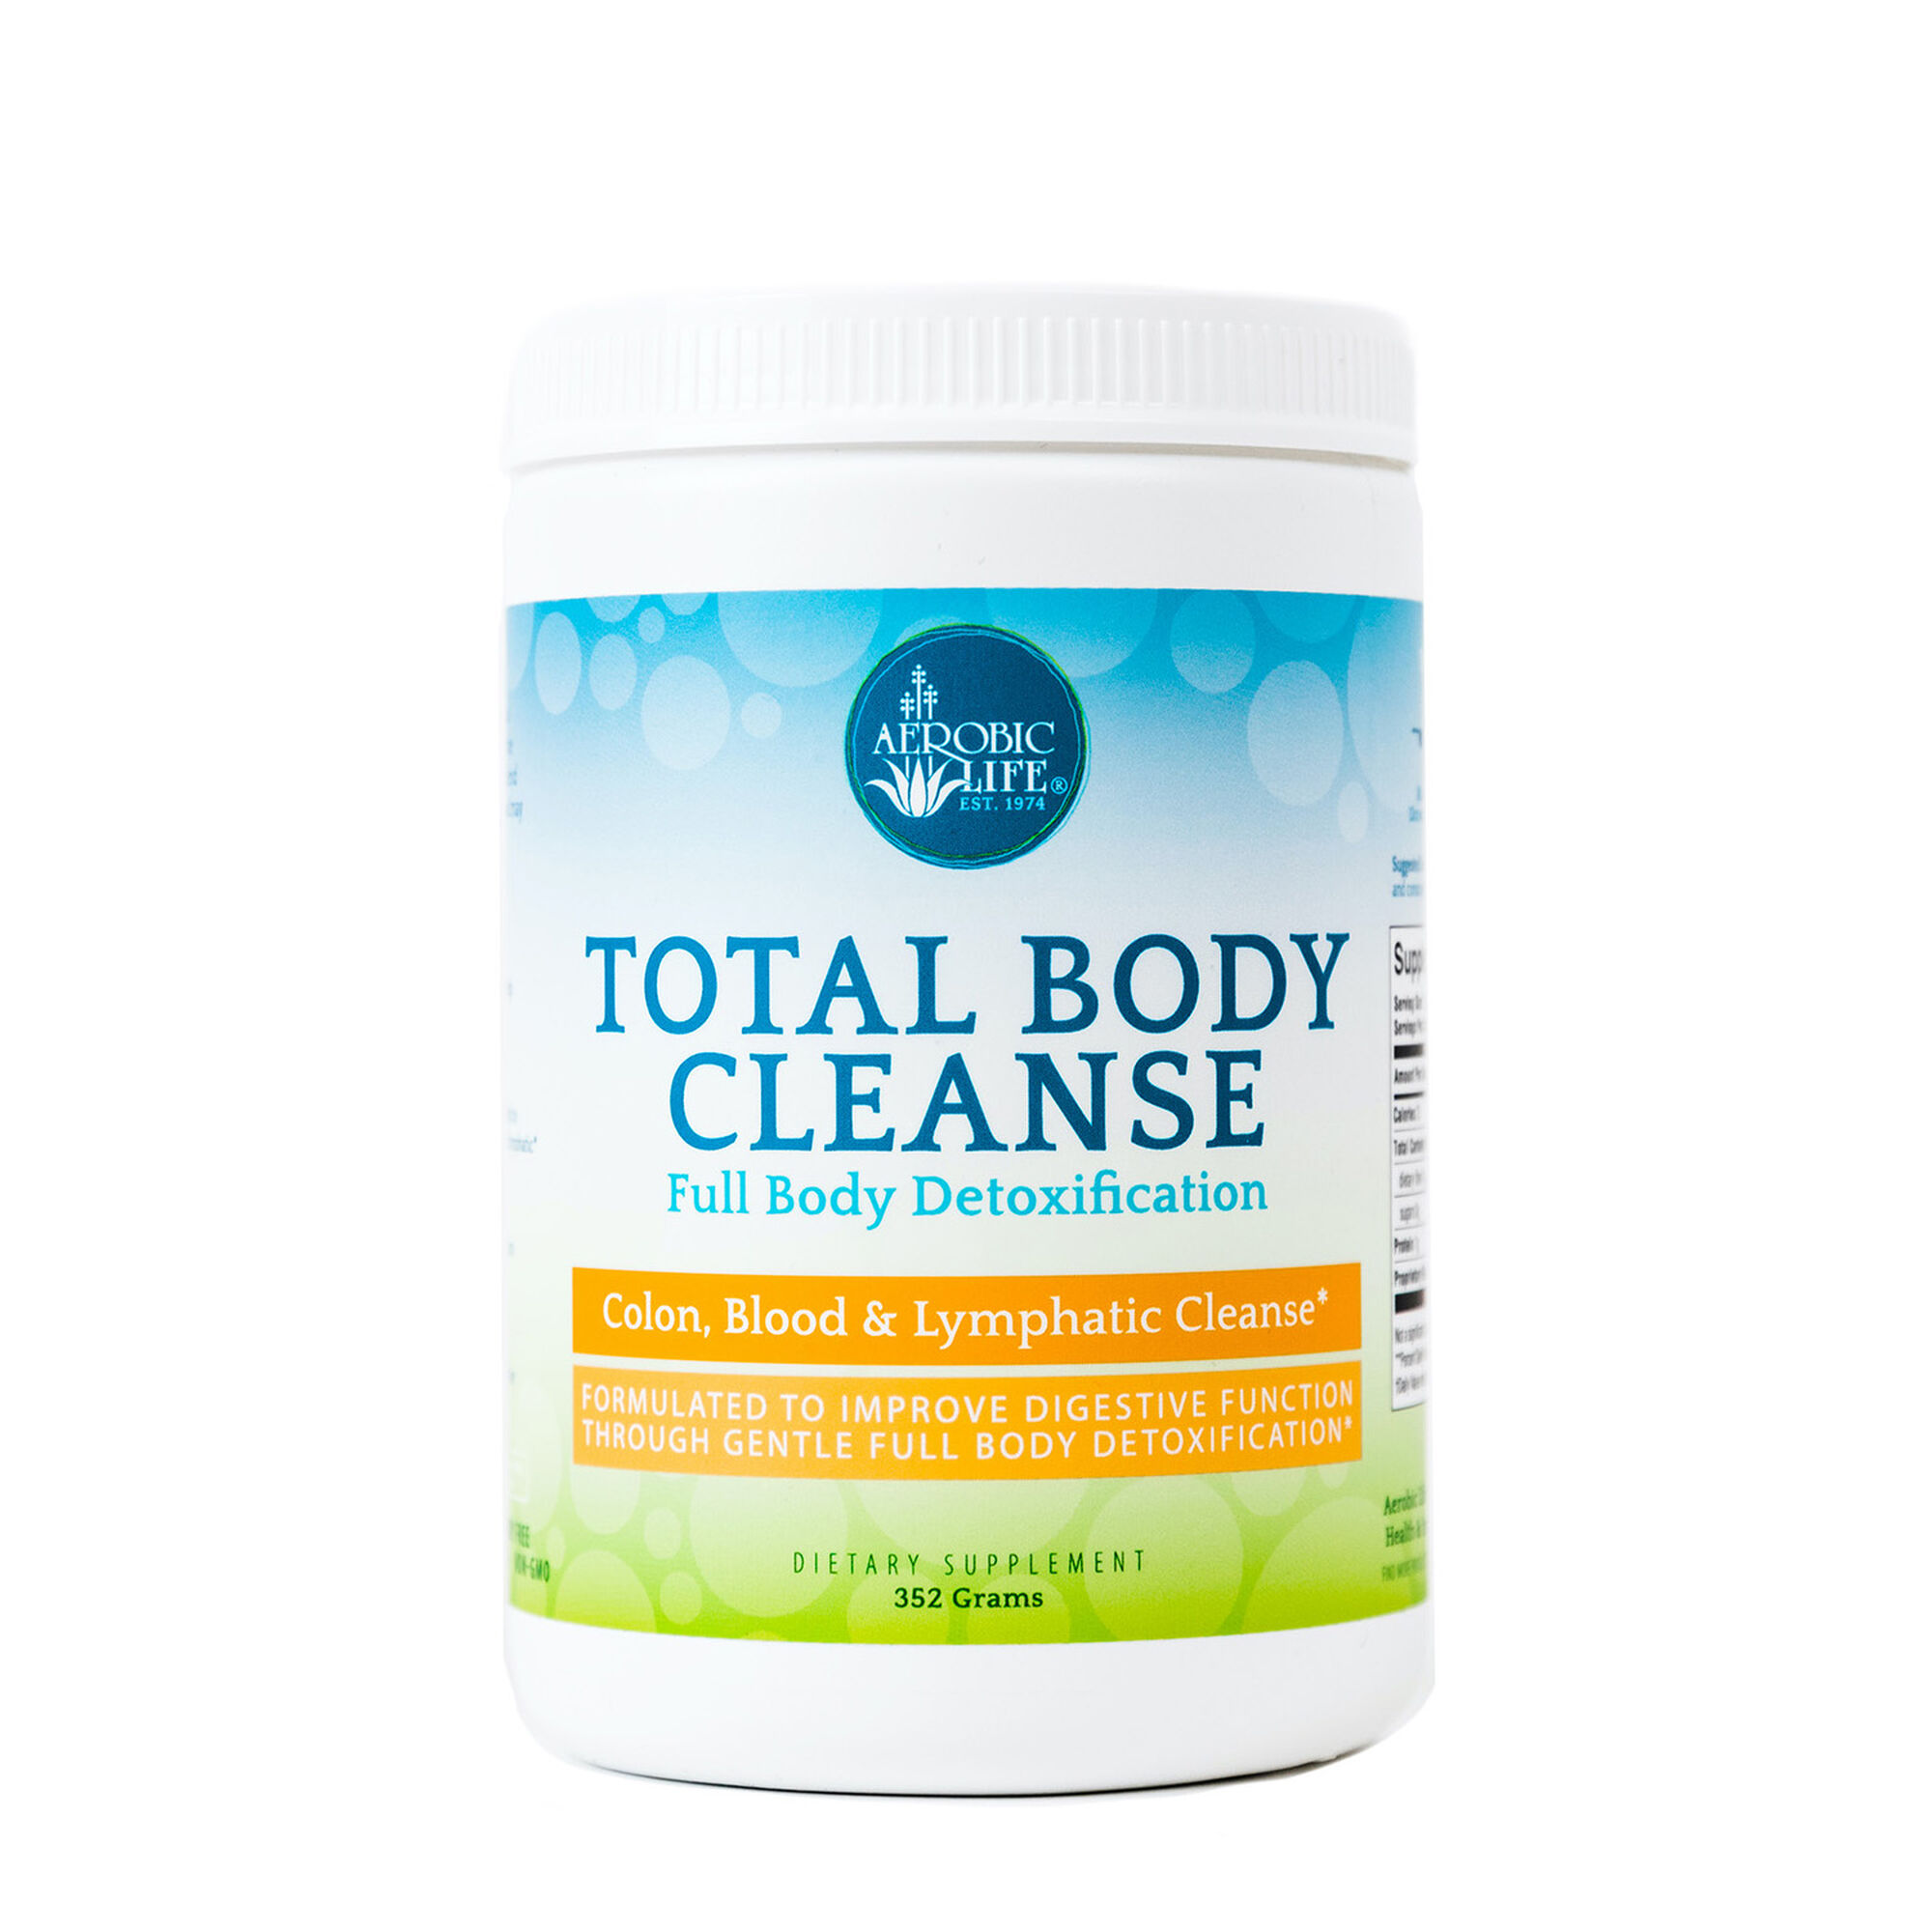 total body cleanse aerobic life